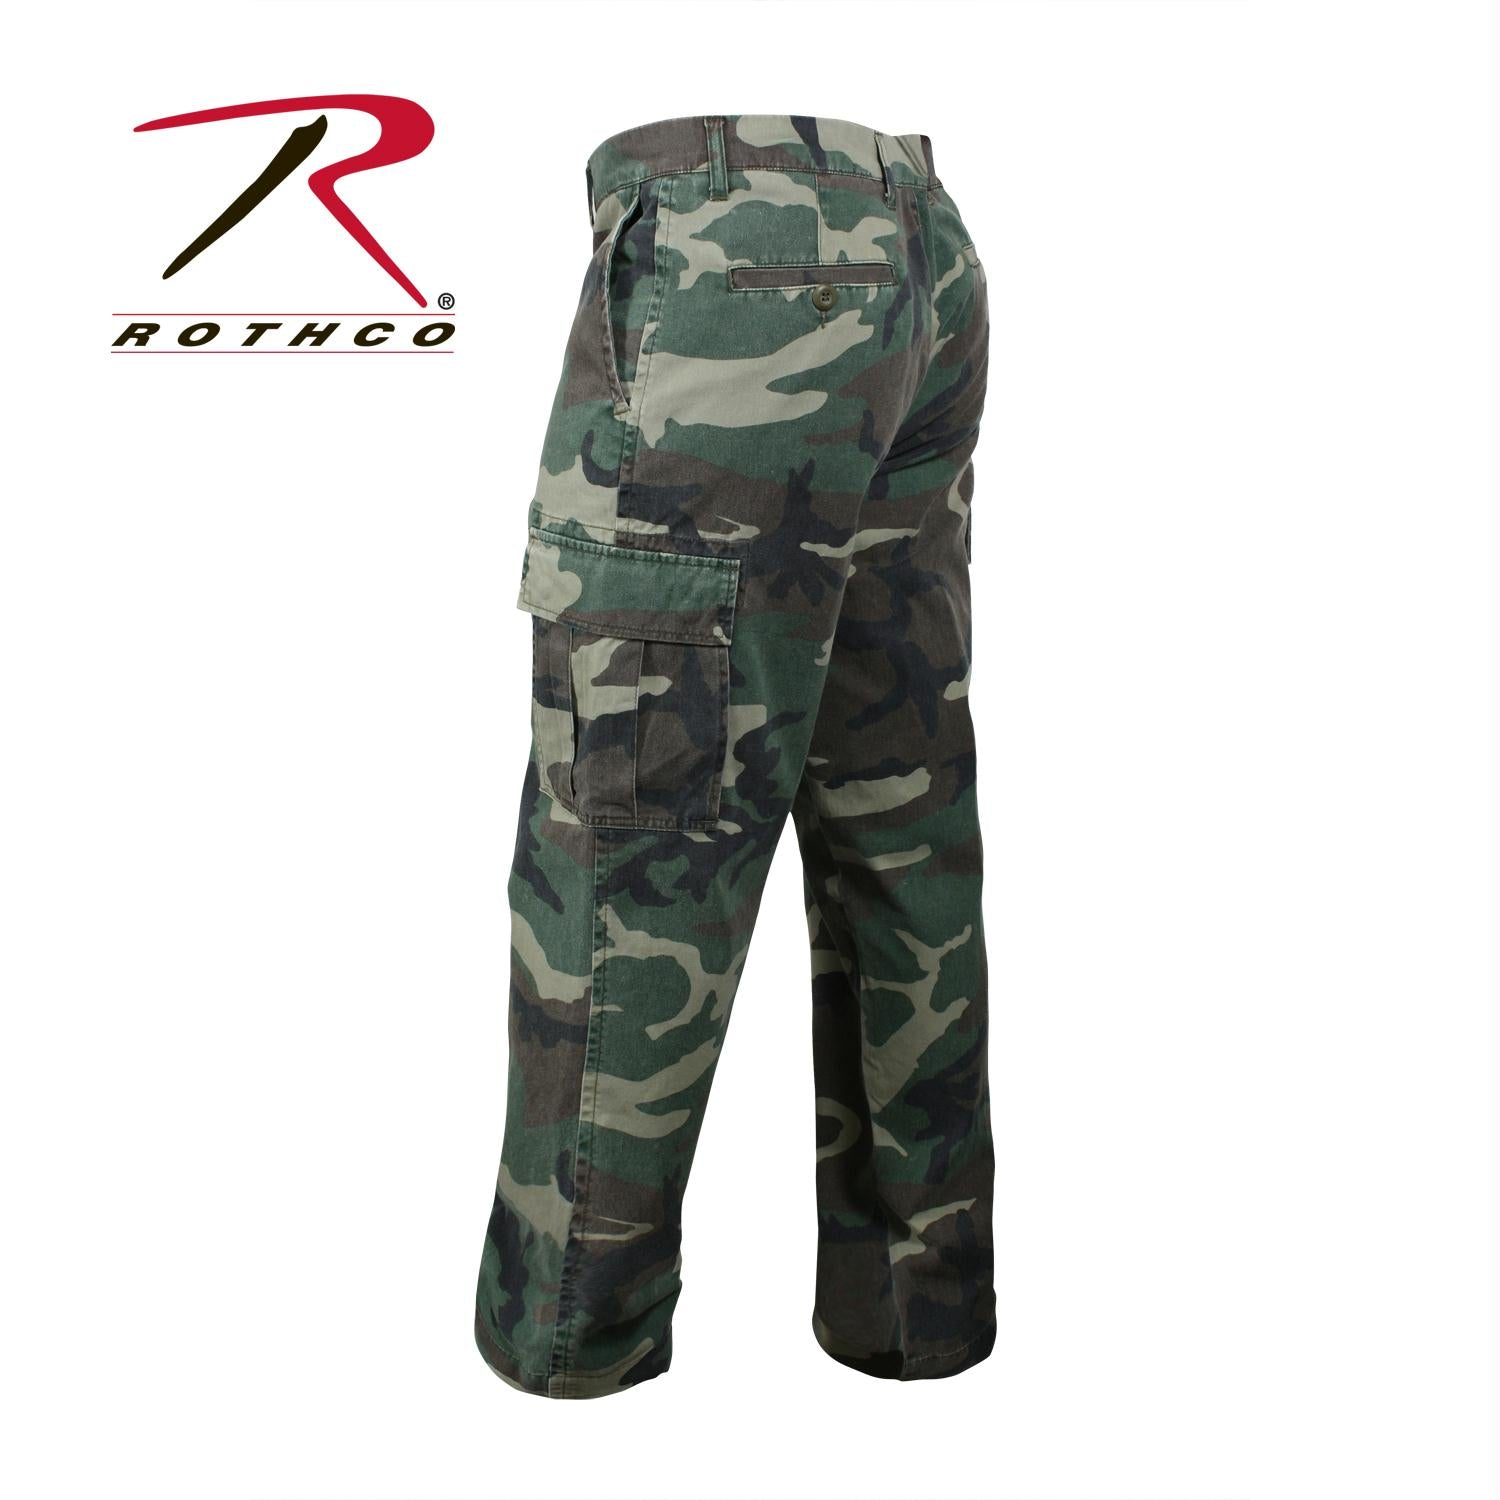 Rothco Vintage 6-Pocket Flat Front Fatigue Pants - Woodland Camo / 34